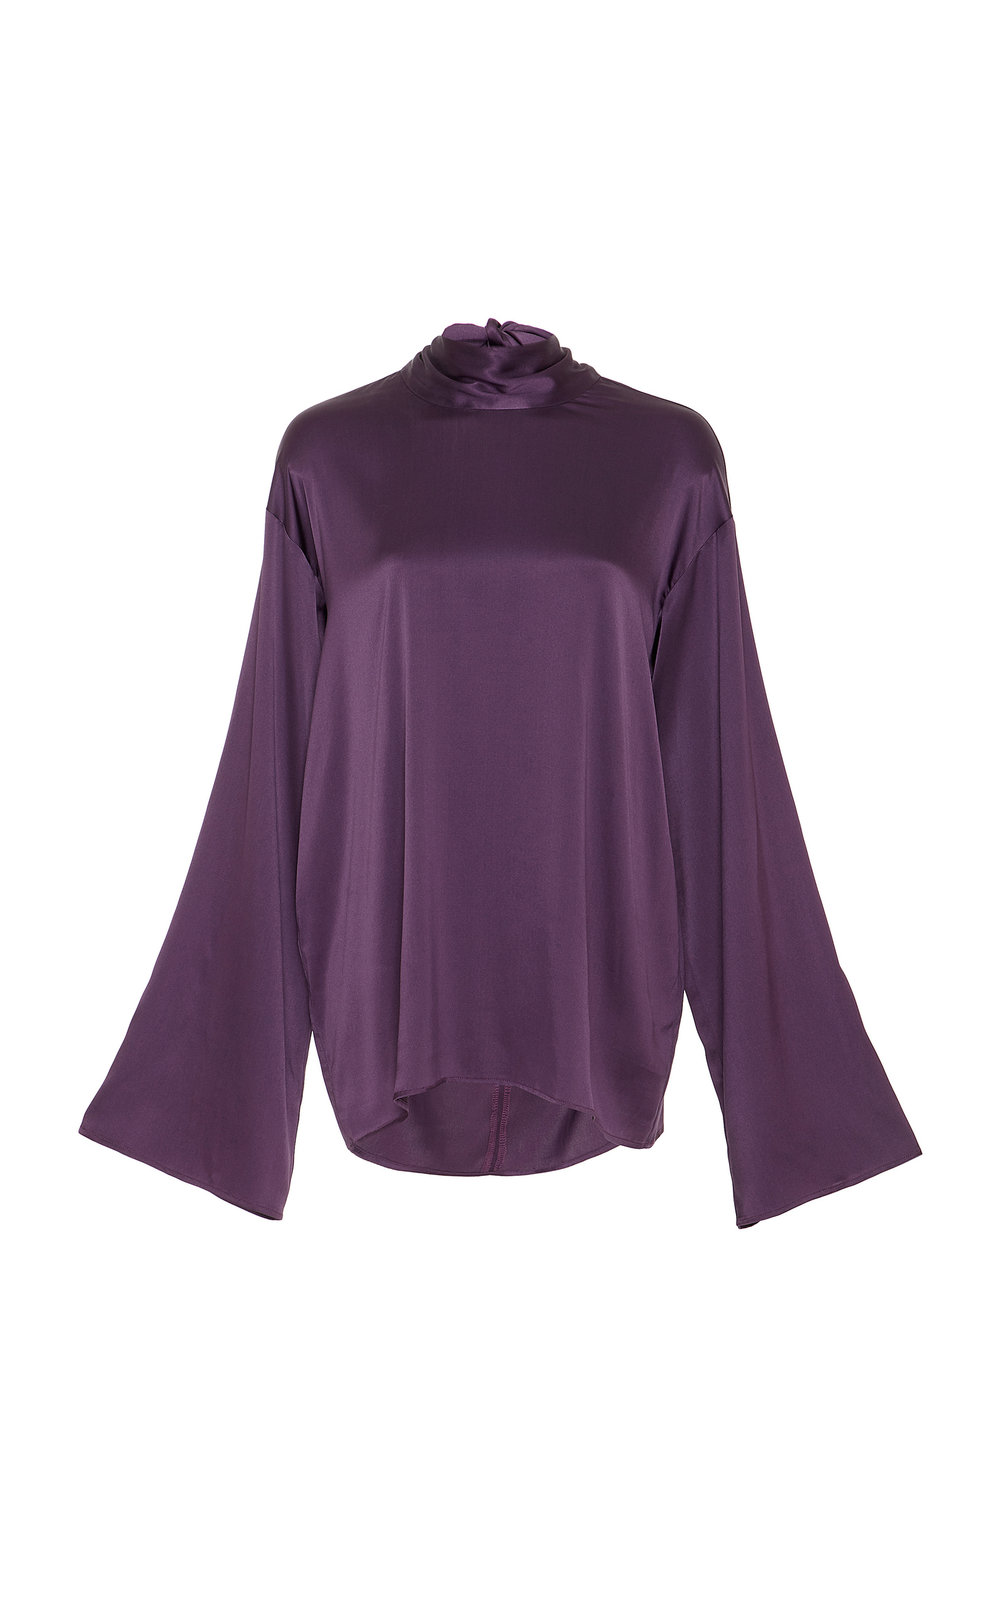 Heliconia Silk Satin Bow Tie Top - PURPLE  A perfect Silk Satin top with a loose fit, flared sleeves and scarf-like neck tie.  The minimalistic shape is easy to dress and suits every occasion.